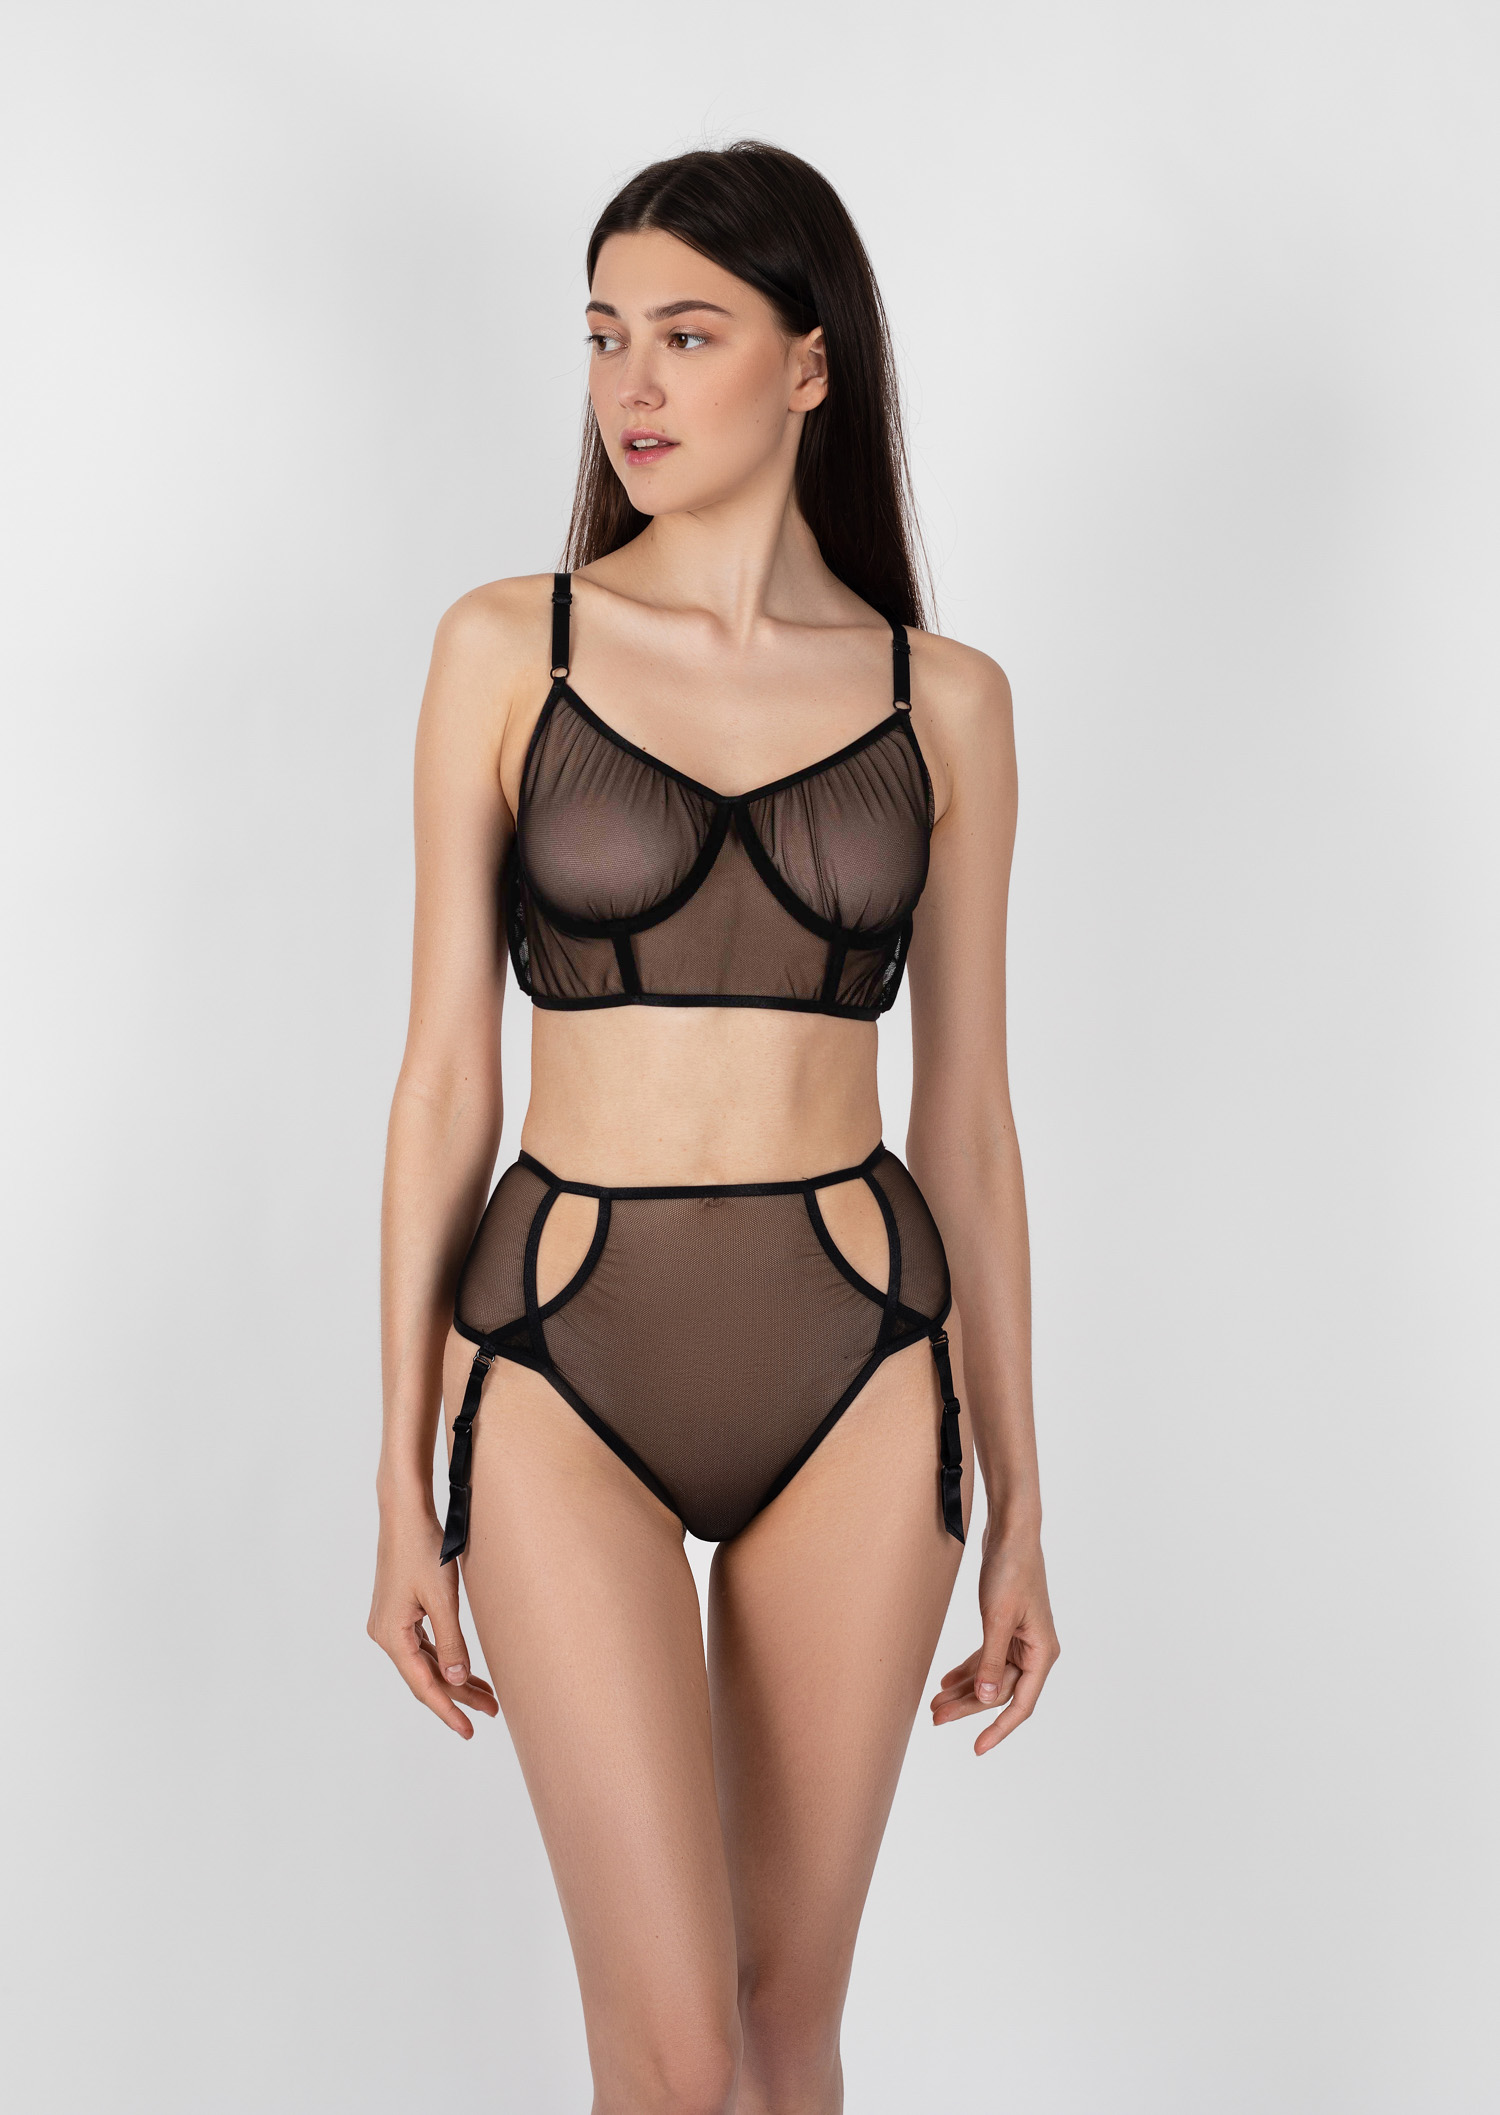 Sonata lingerie set / erotic clear black lingerie with straps / sexy transparent non wired bra with high waist belt and high waist panties